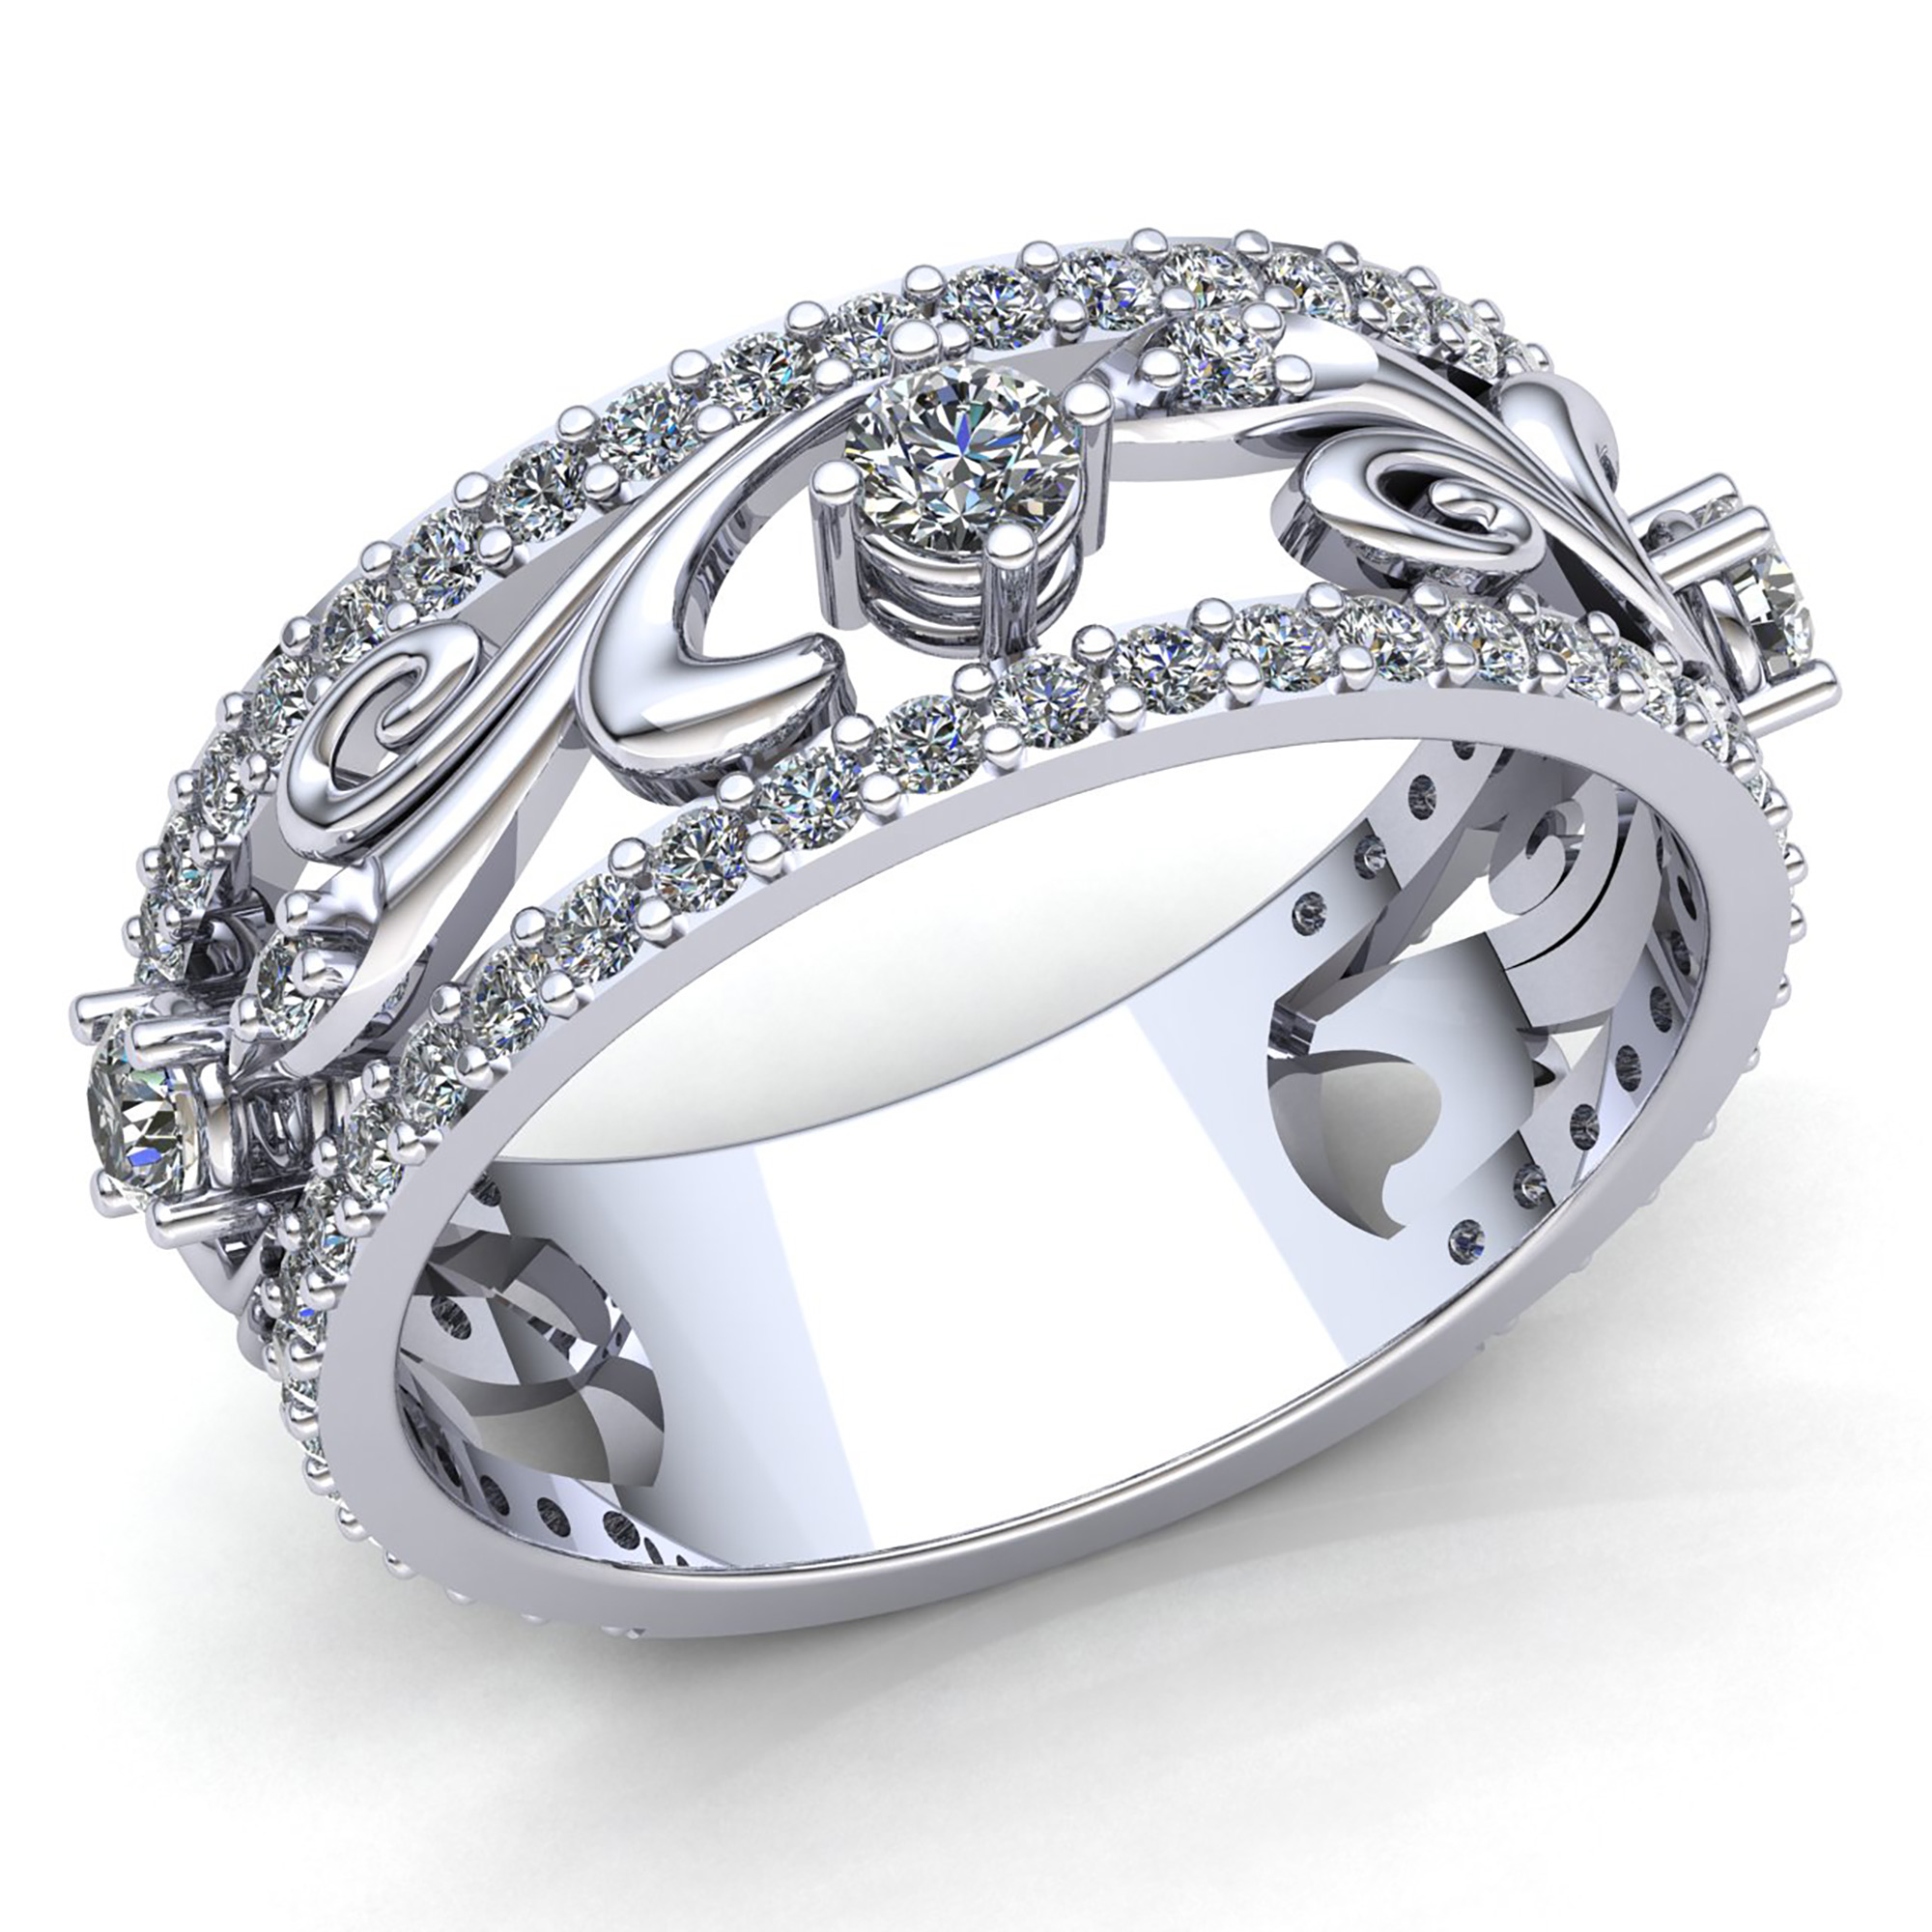 ring design celtic bands platinum pin wedding filigree gents